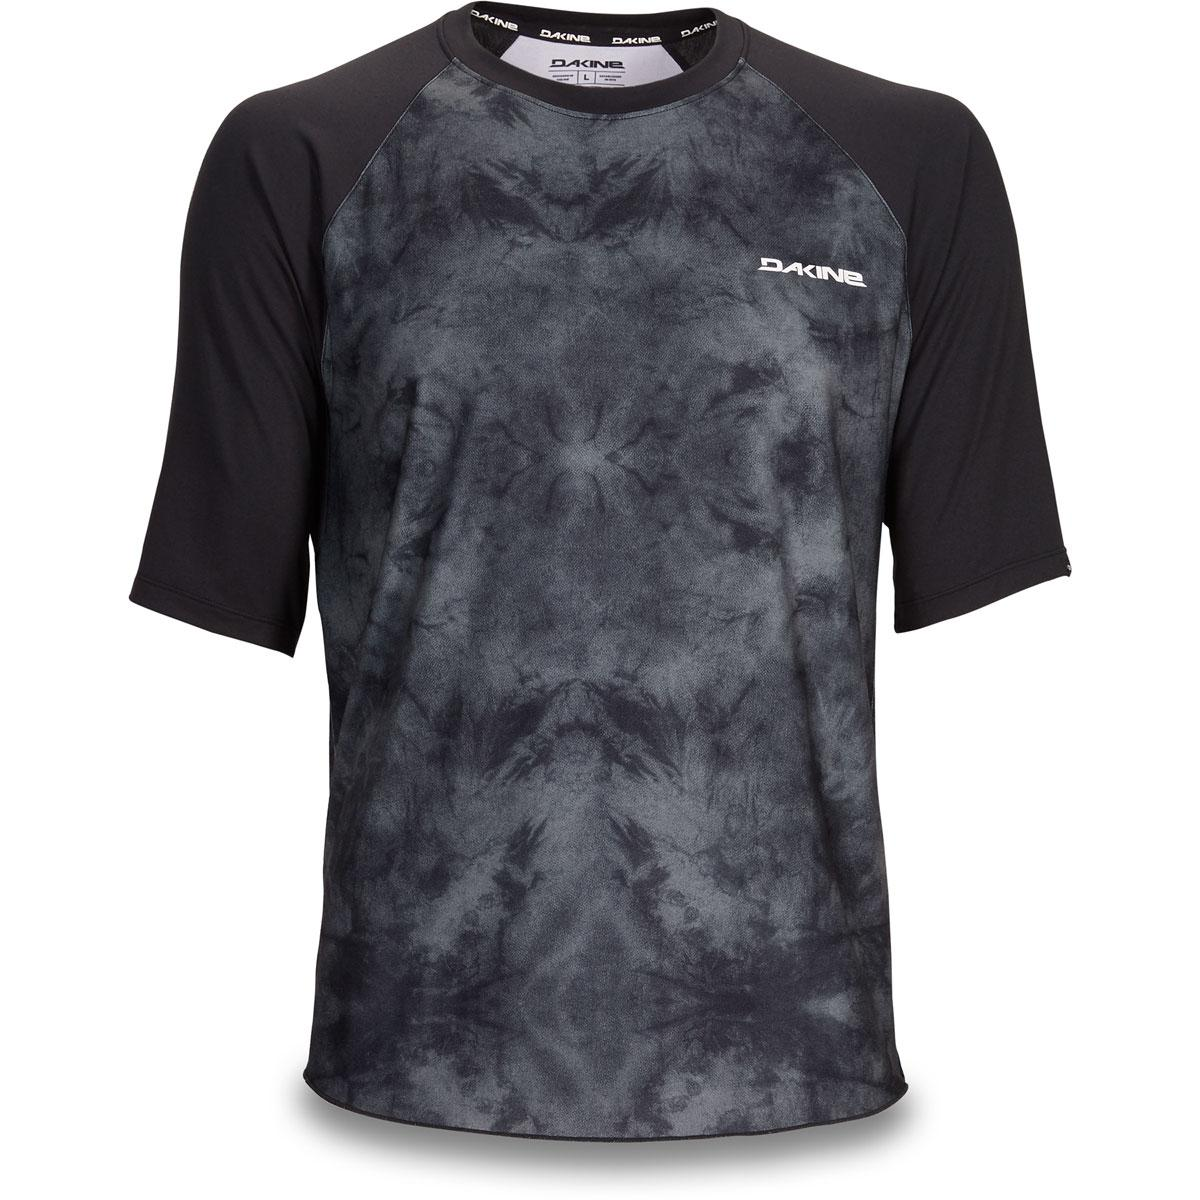 Dakine Dropout Jersey in Black Haze